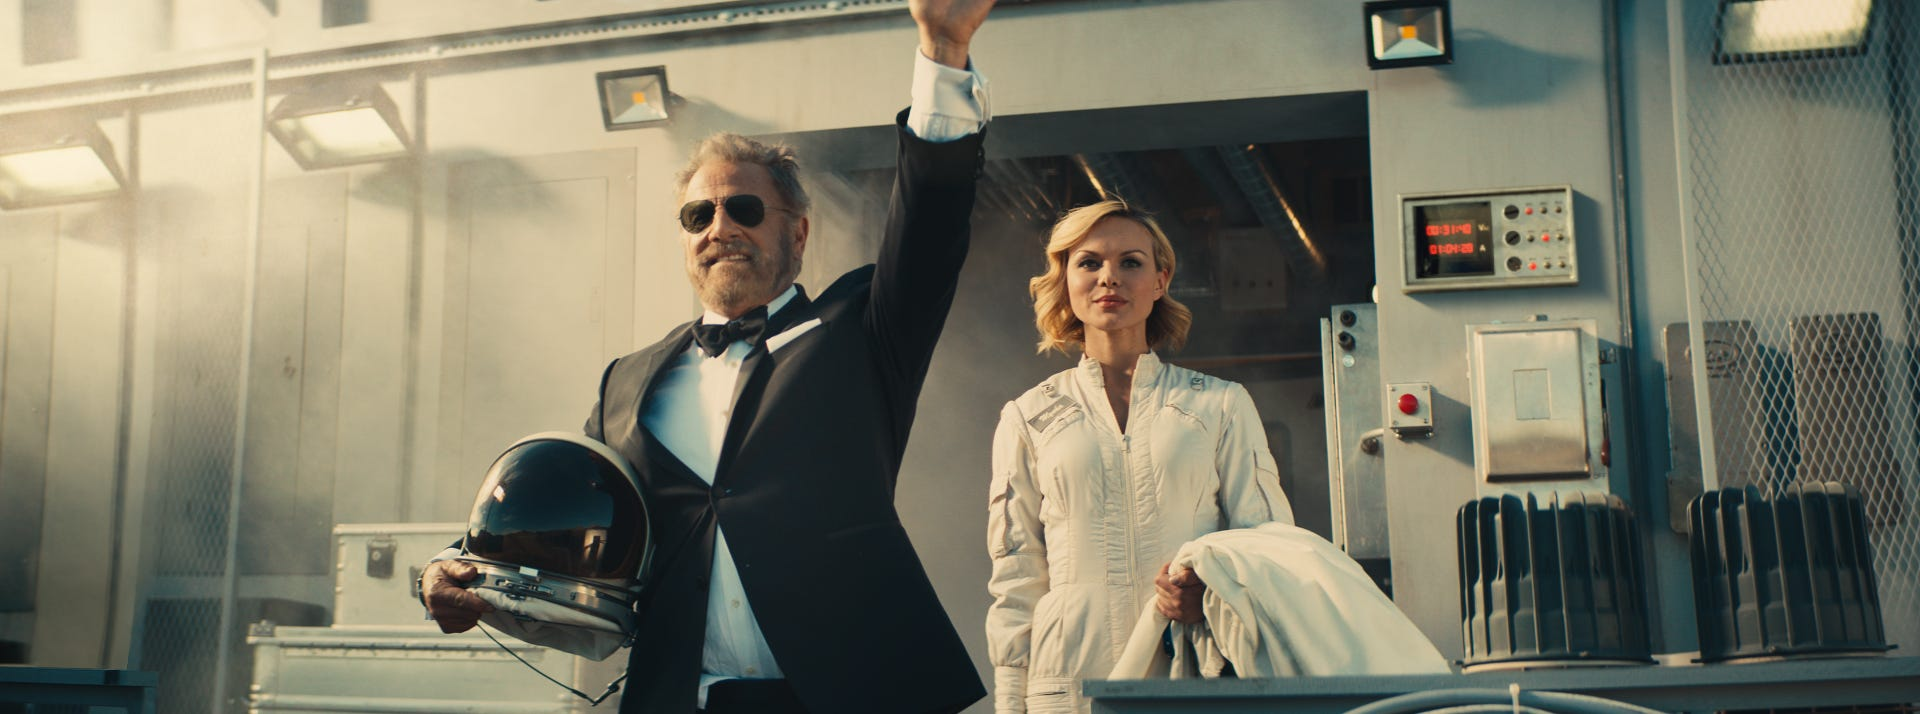 635930560612522093 DosEquis MissionToMars ForEdelman Still05?quality=10 dos equis retiring its 'most interesting man in the world'